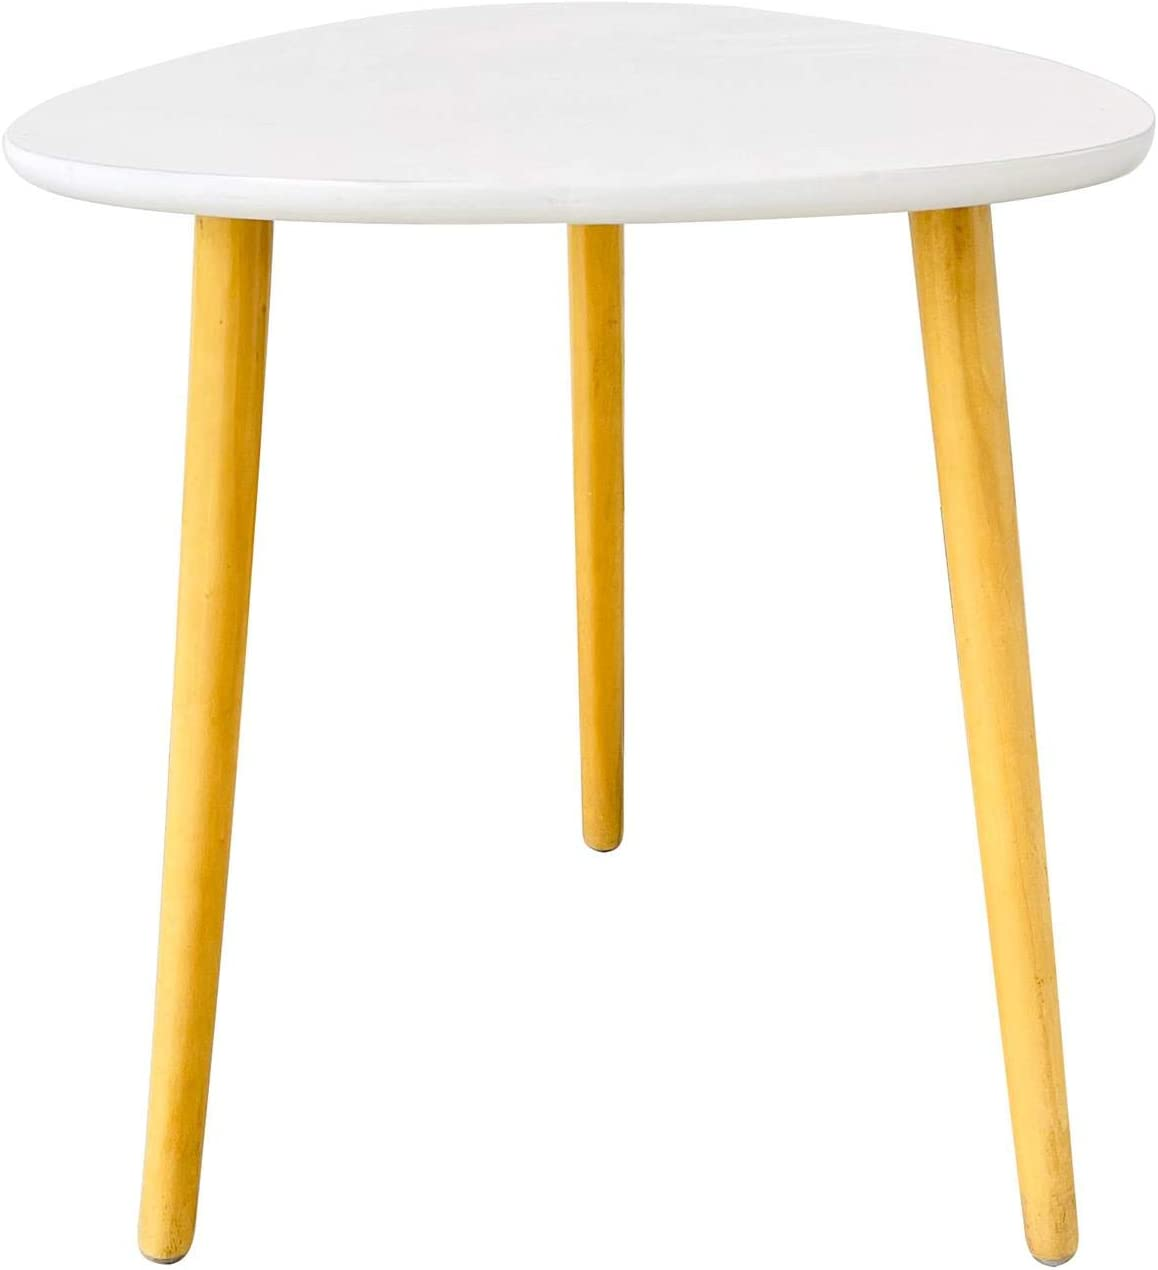 Triangle Side Table End Table,Wooden,with Pine Tripod Wood Legs Stand,for Living Room Bedroom Office Small Spaces,15.7